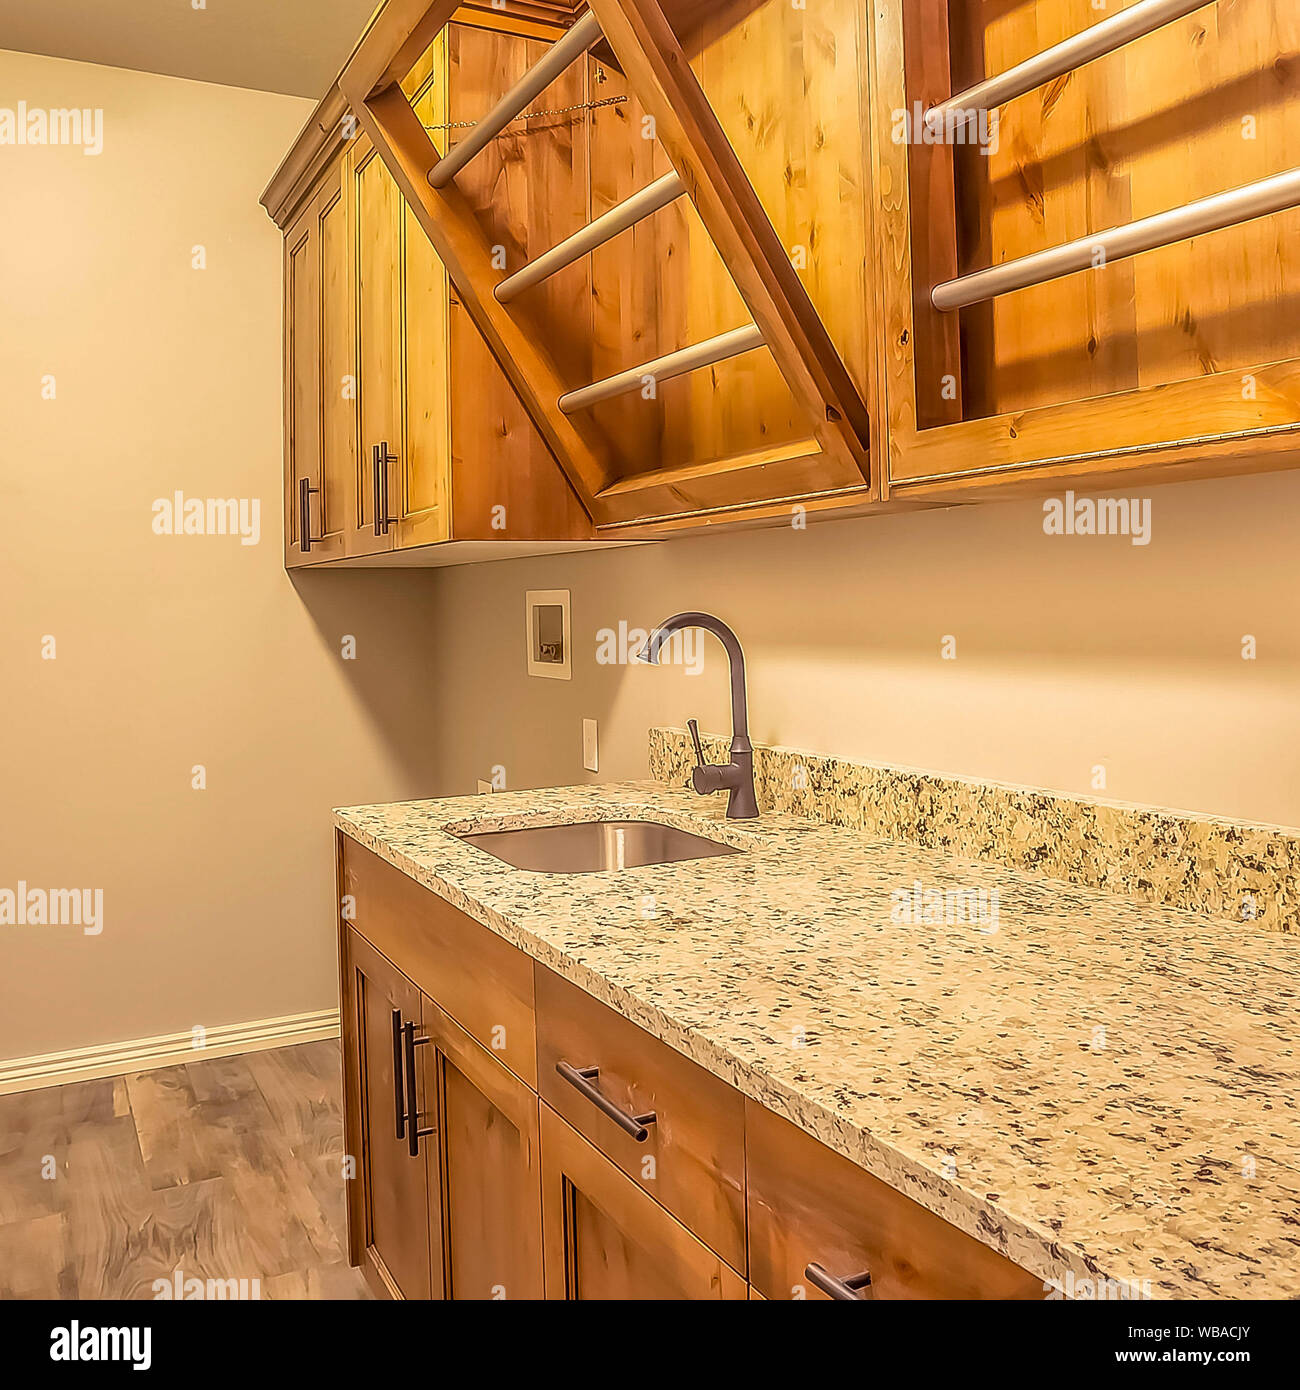 Square Kitchen Interior Of New Home With Dark Wood Cabinets Marble Countertop And Sink Stock Photo Alamy